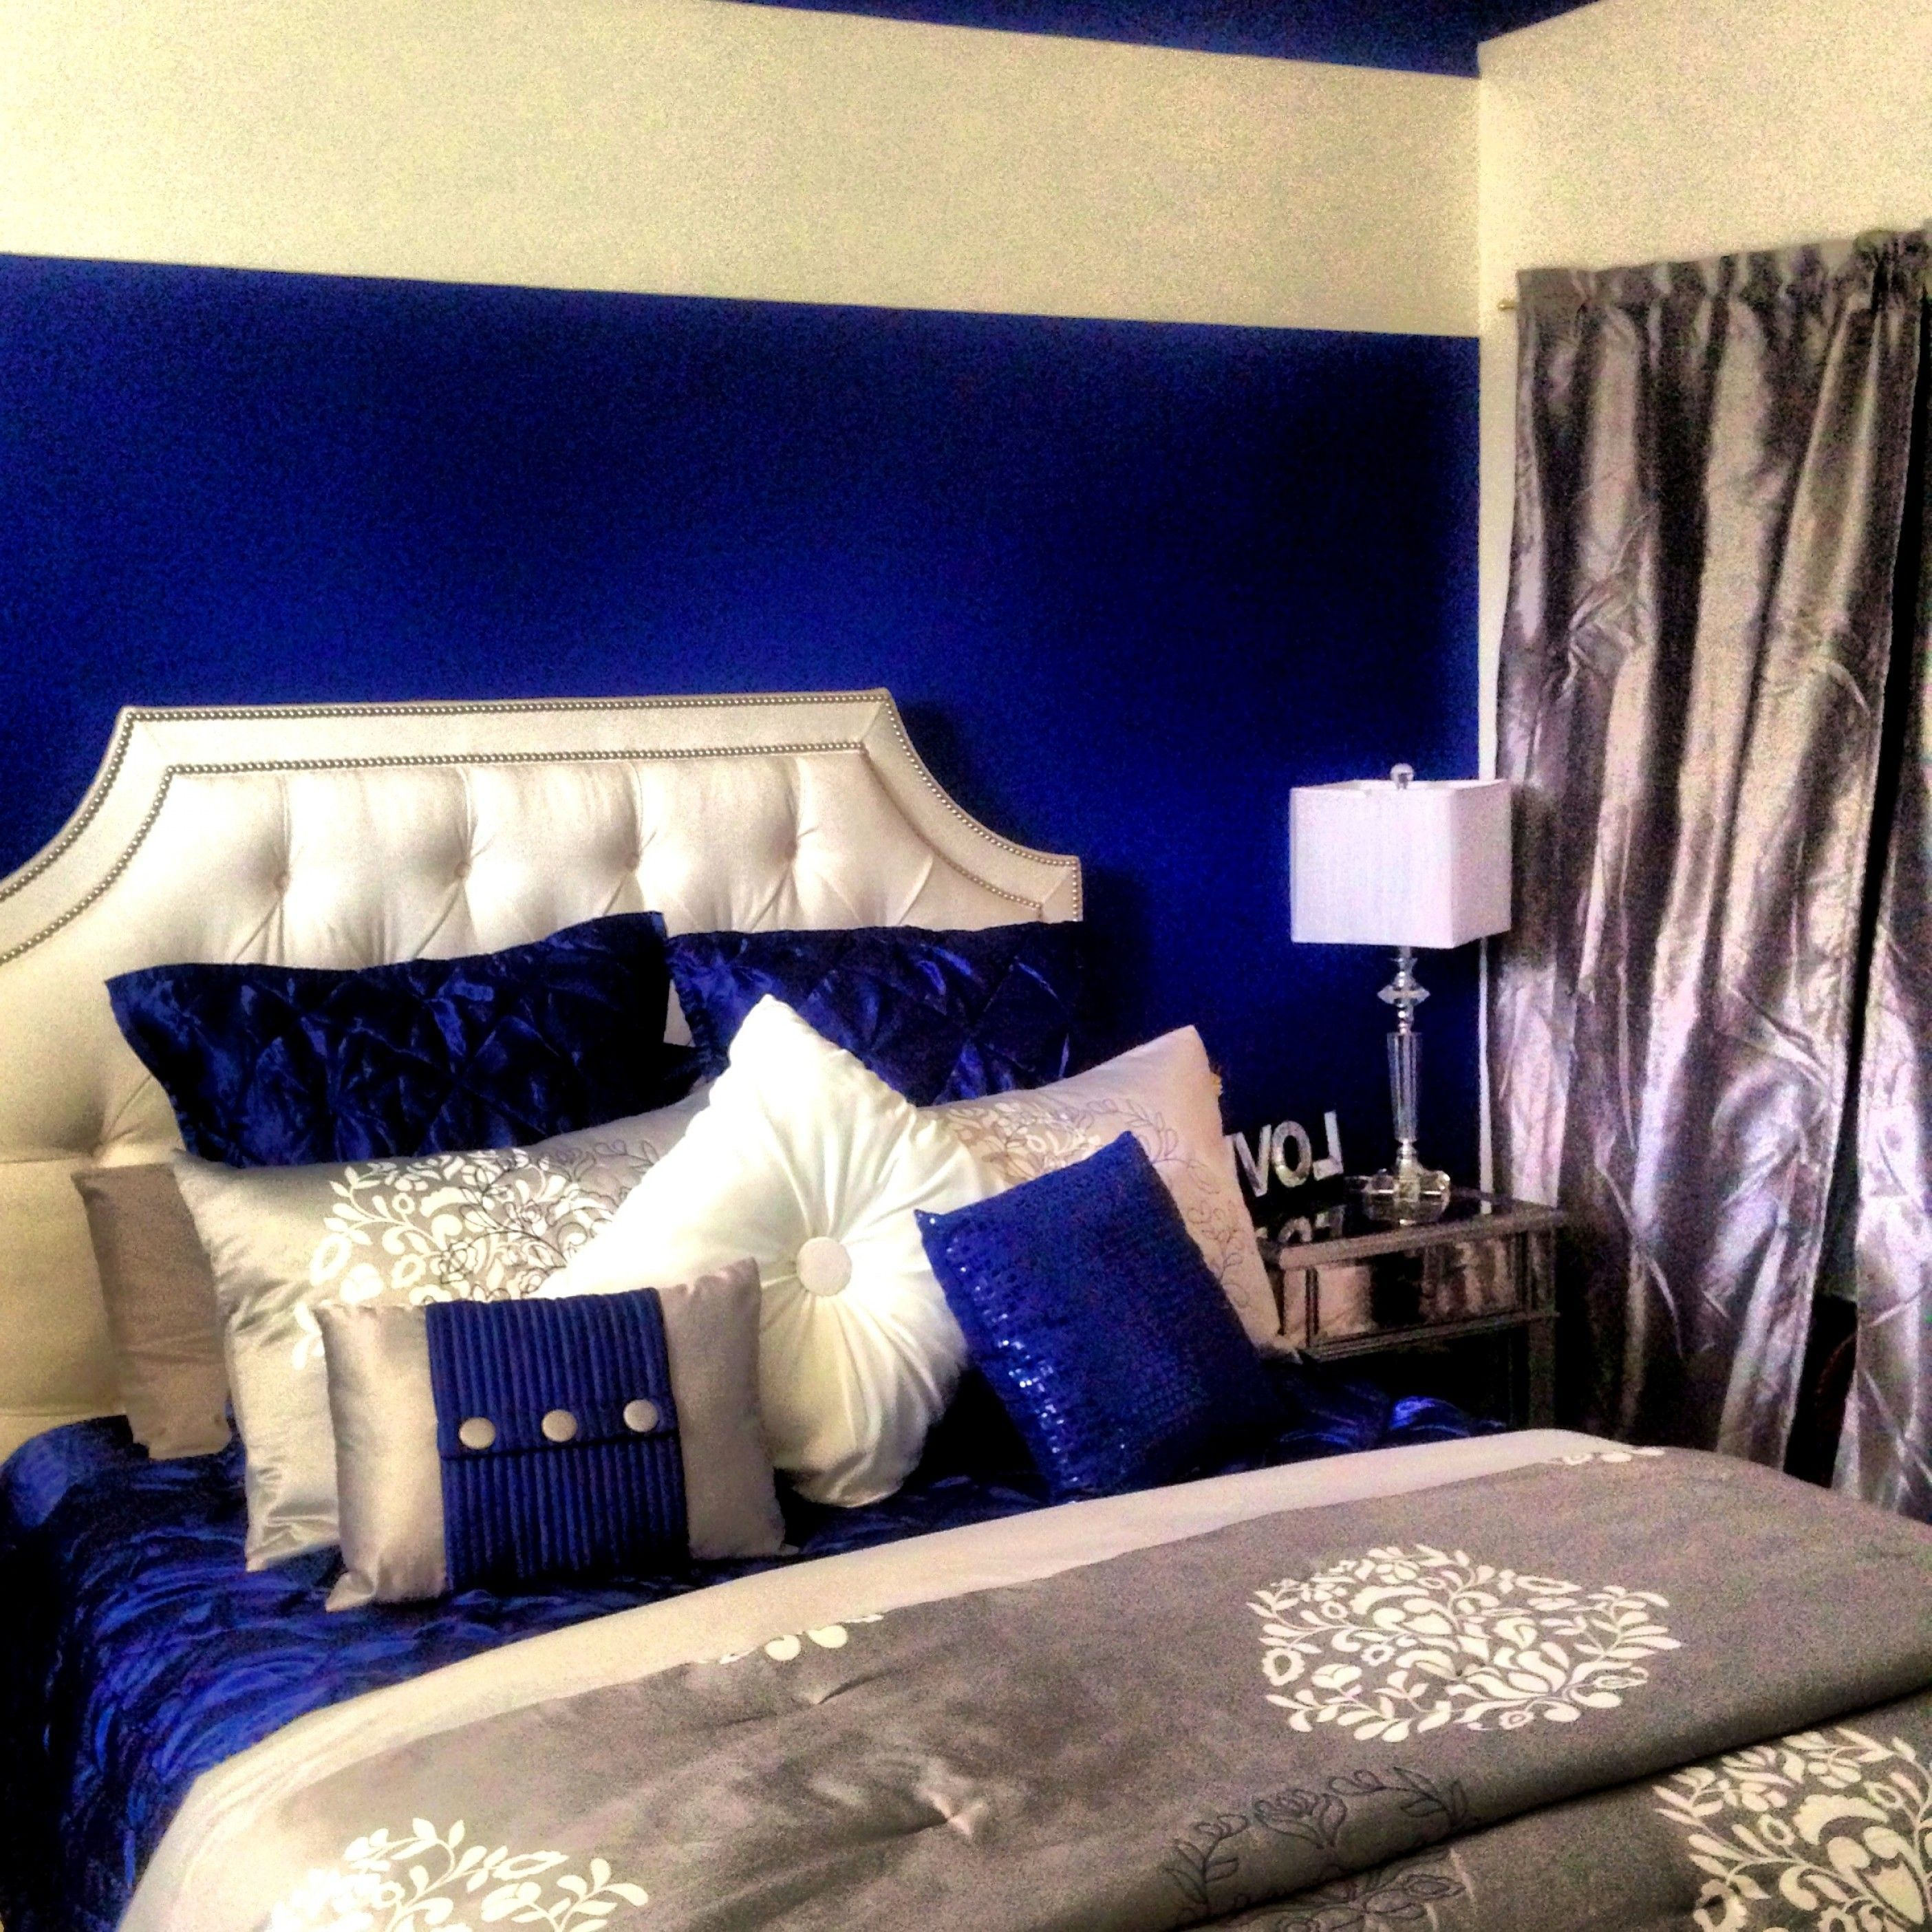 10 Royal Blue Bedroom Ideas Most Stylish And Attractive Blue Room Decor Blue Bedroom Decor Blue And Gold Bedroom